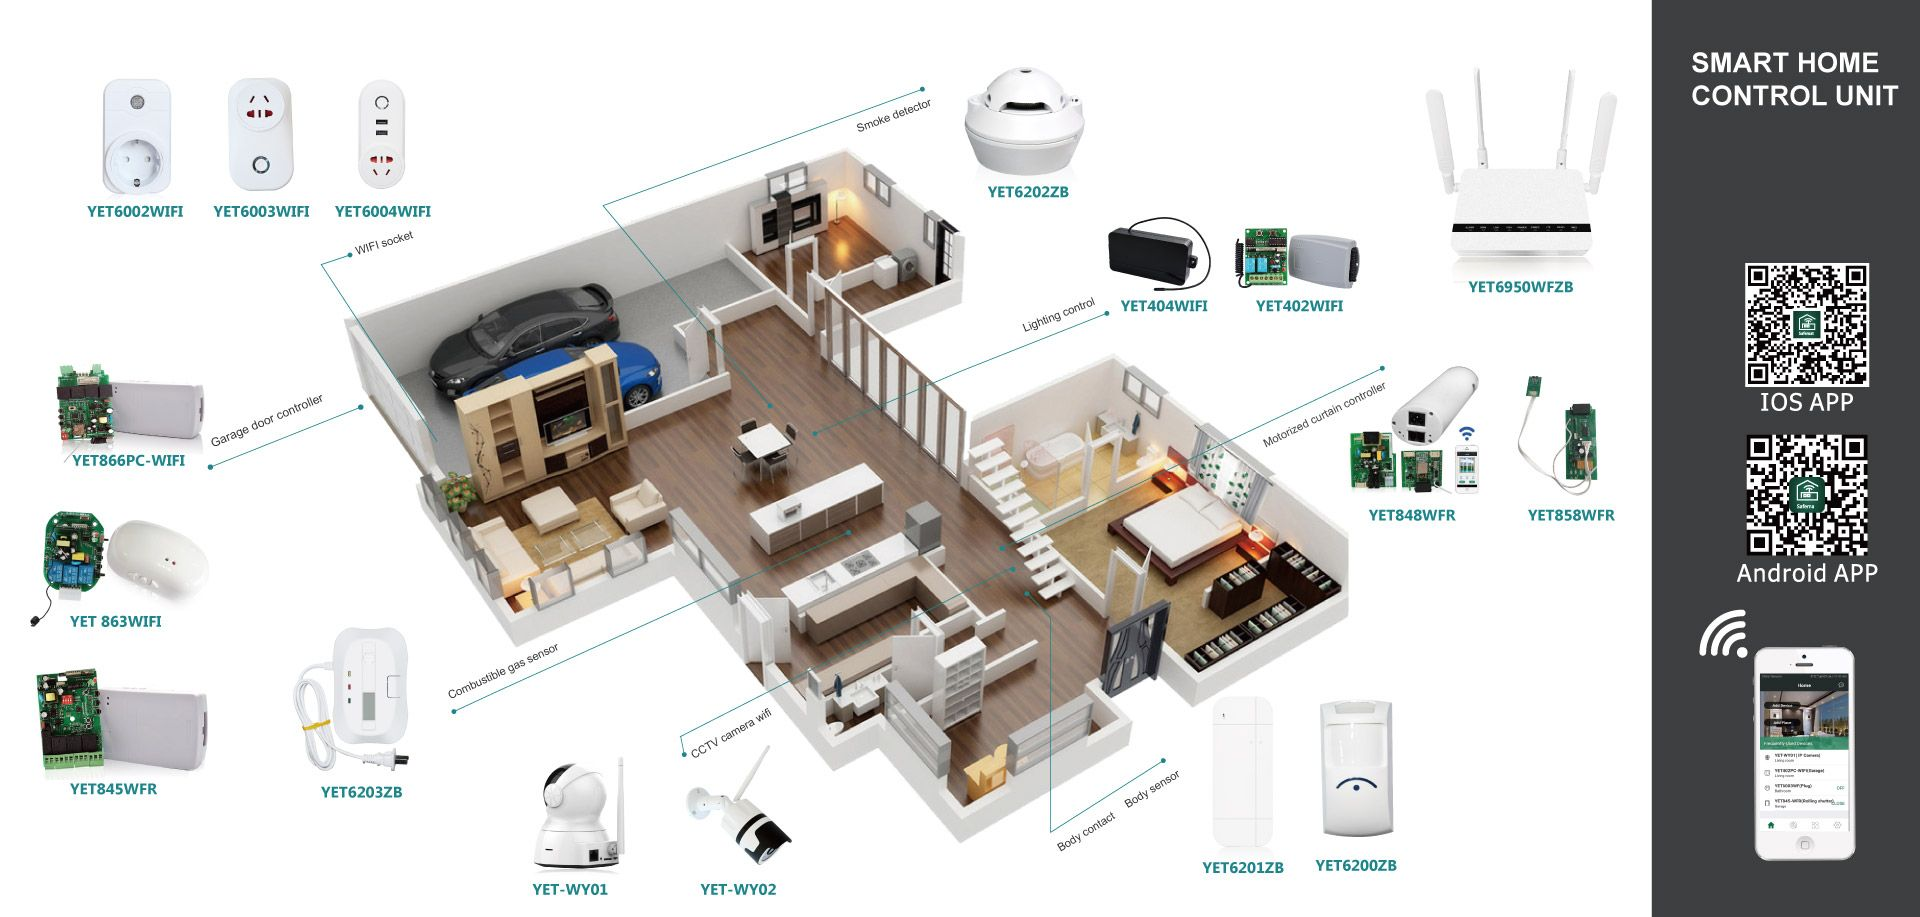 Smart Home Control System Alarm Systems For Home Home Security Systems Smart Home Control